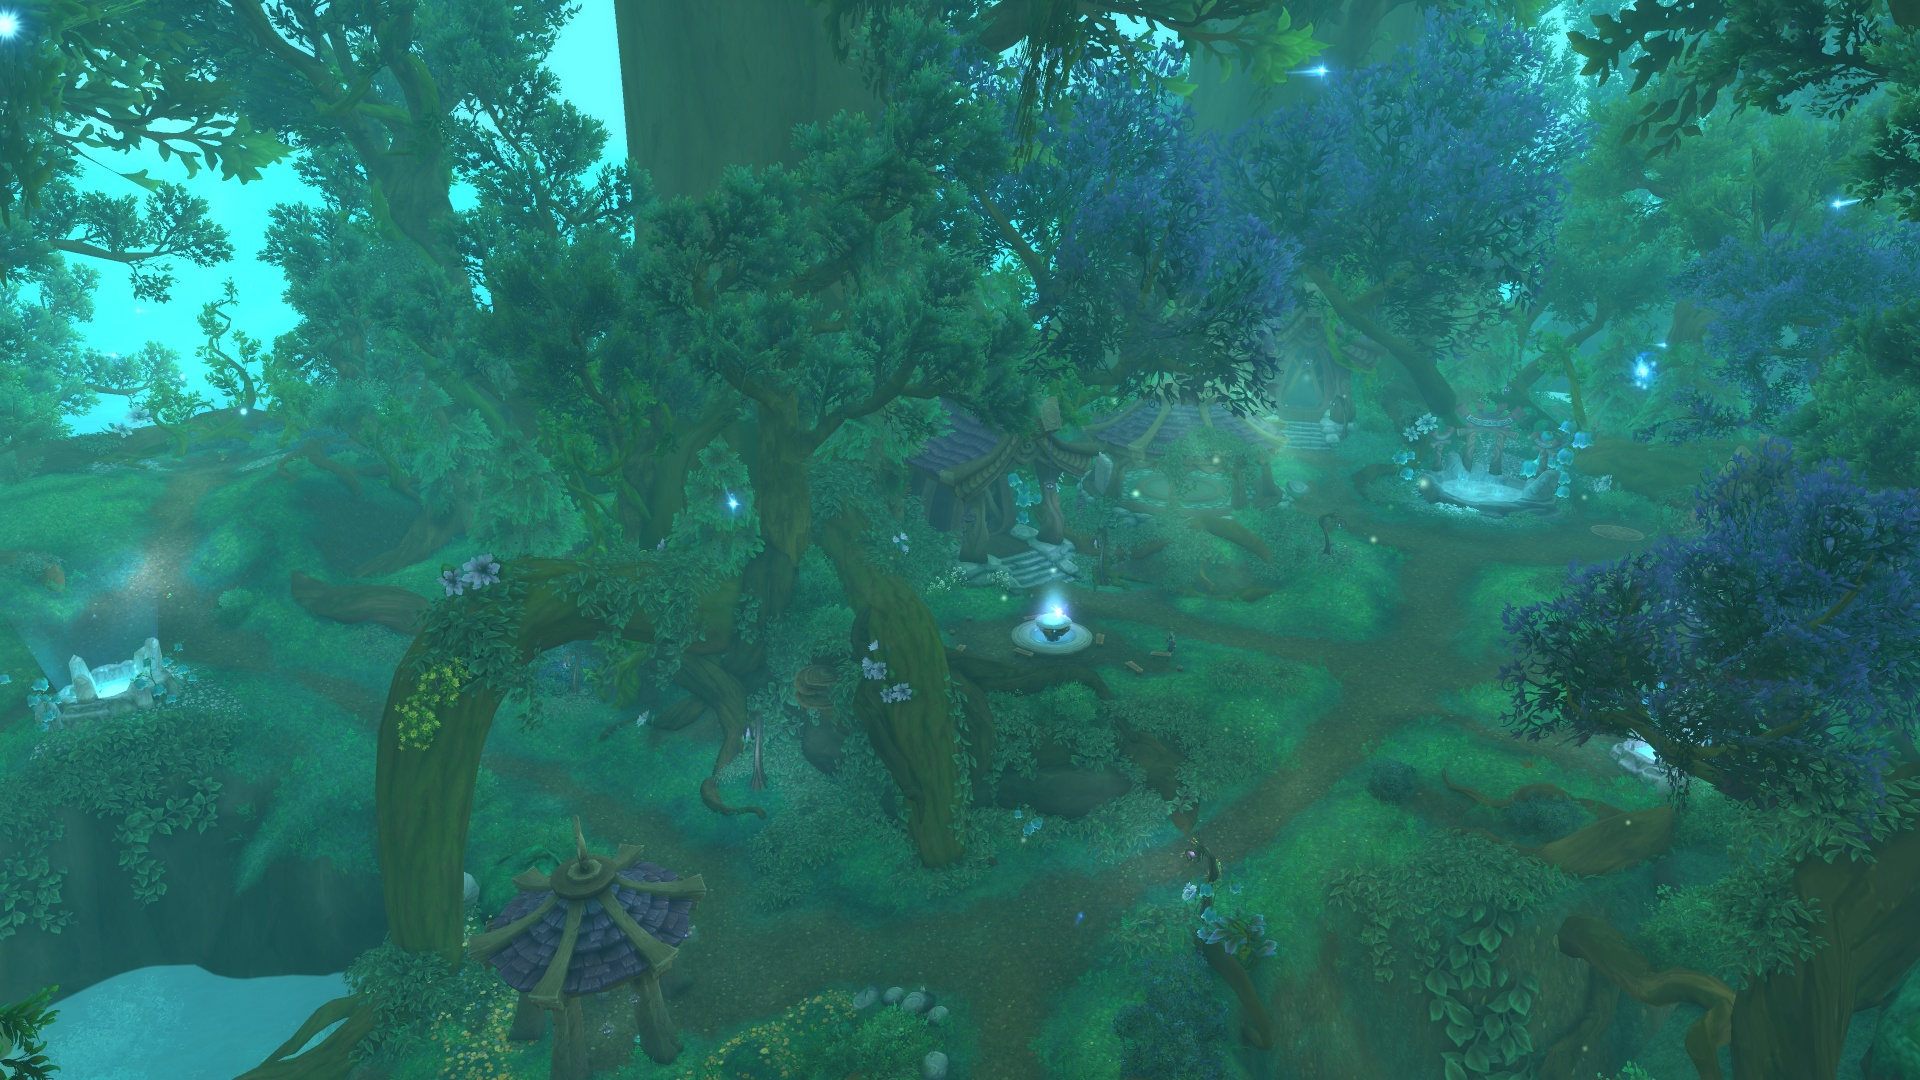 Druid Hidden Artifacts Appearances and Effects